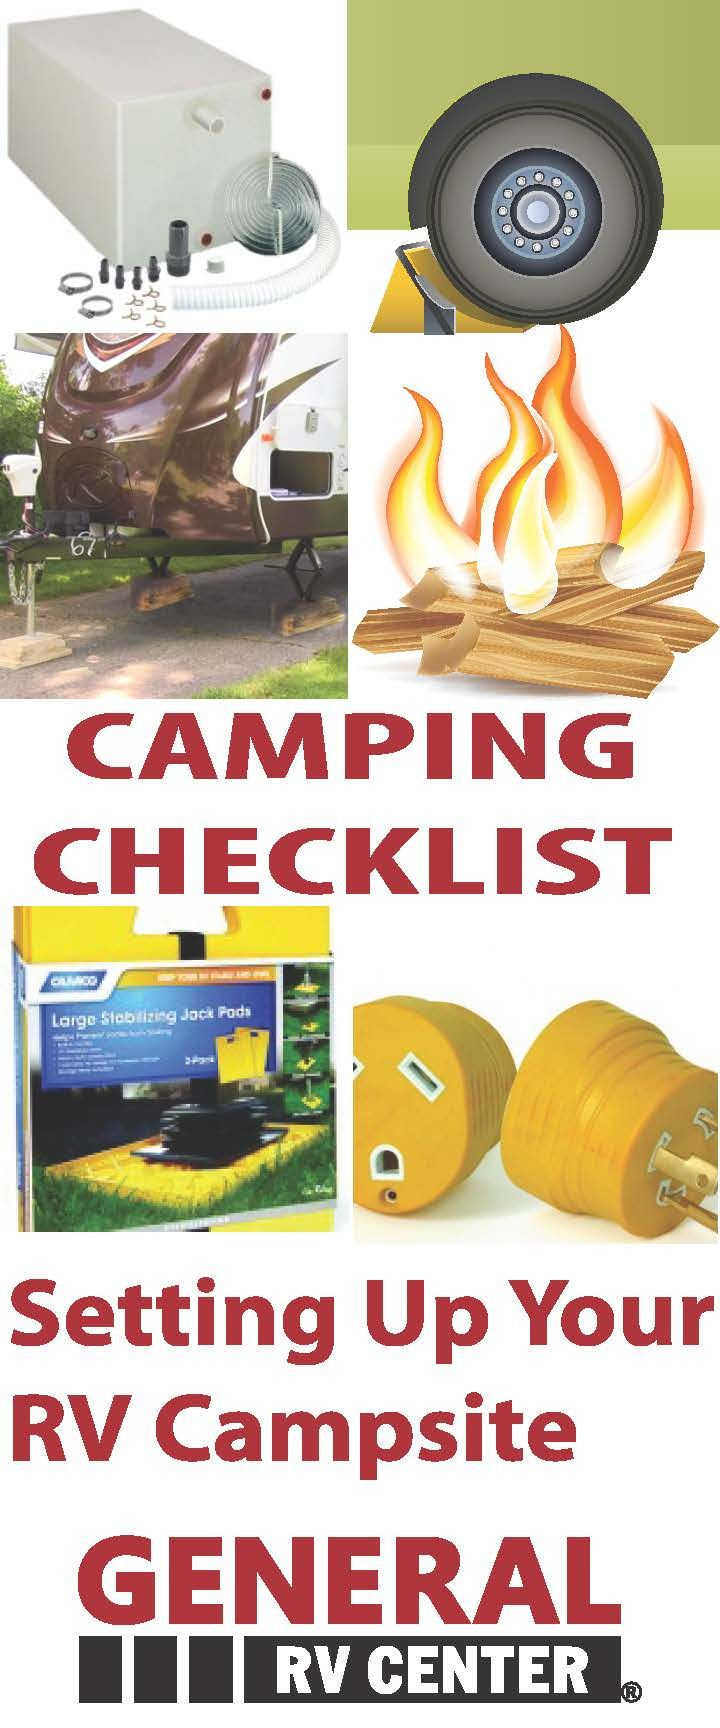 Camping checklist step by step guide to setting up your rv campsite whether you have a towable or a motorhome these rv tips are sure to help make your